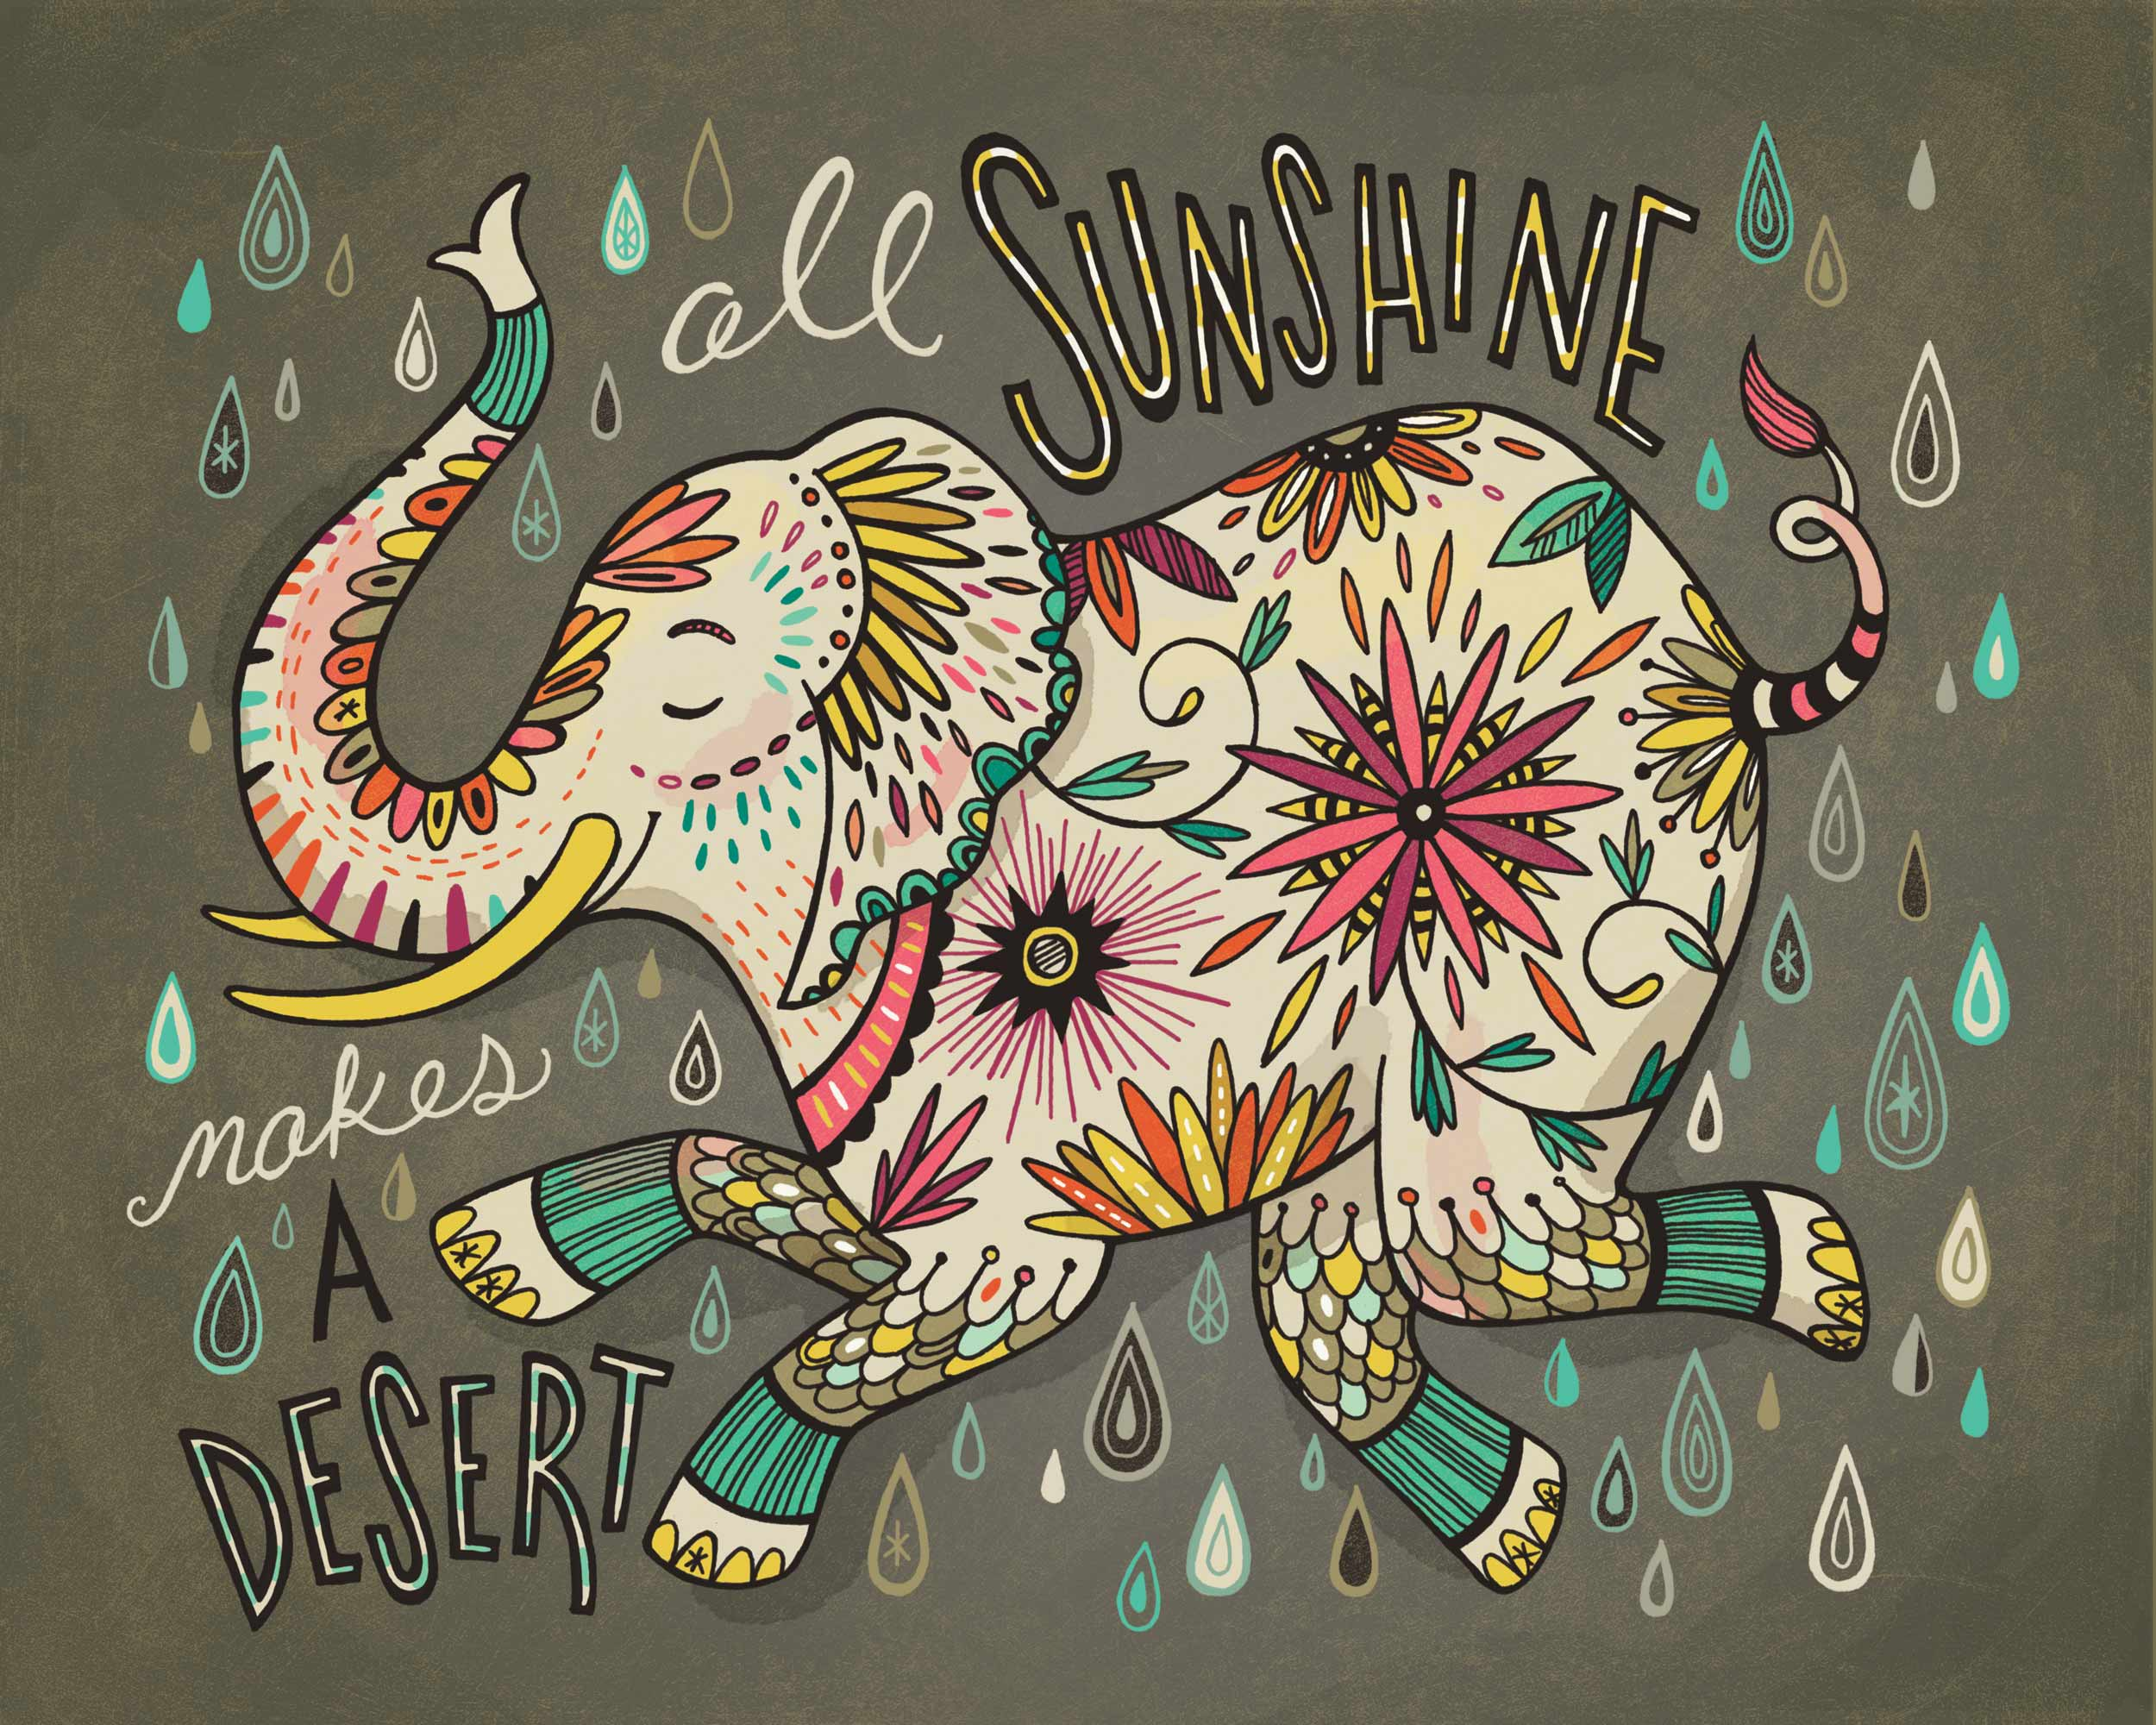 All Sunshine Makes a Desert: print for sale